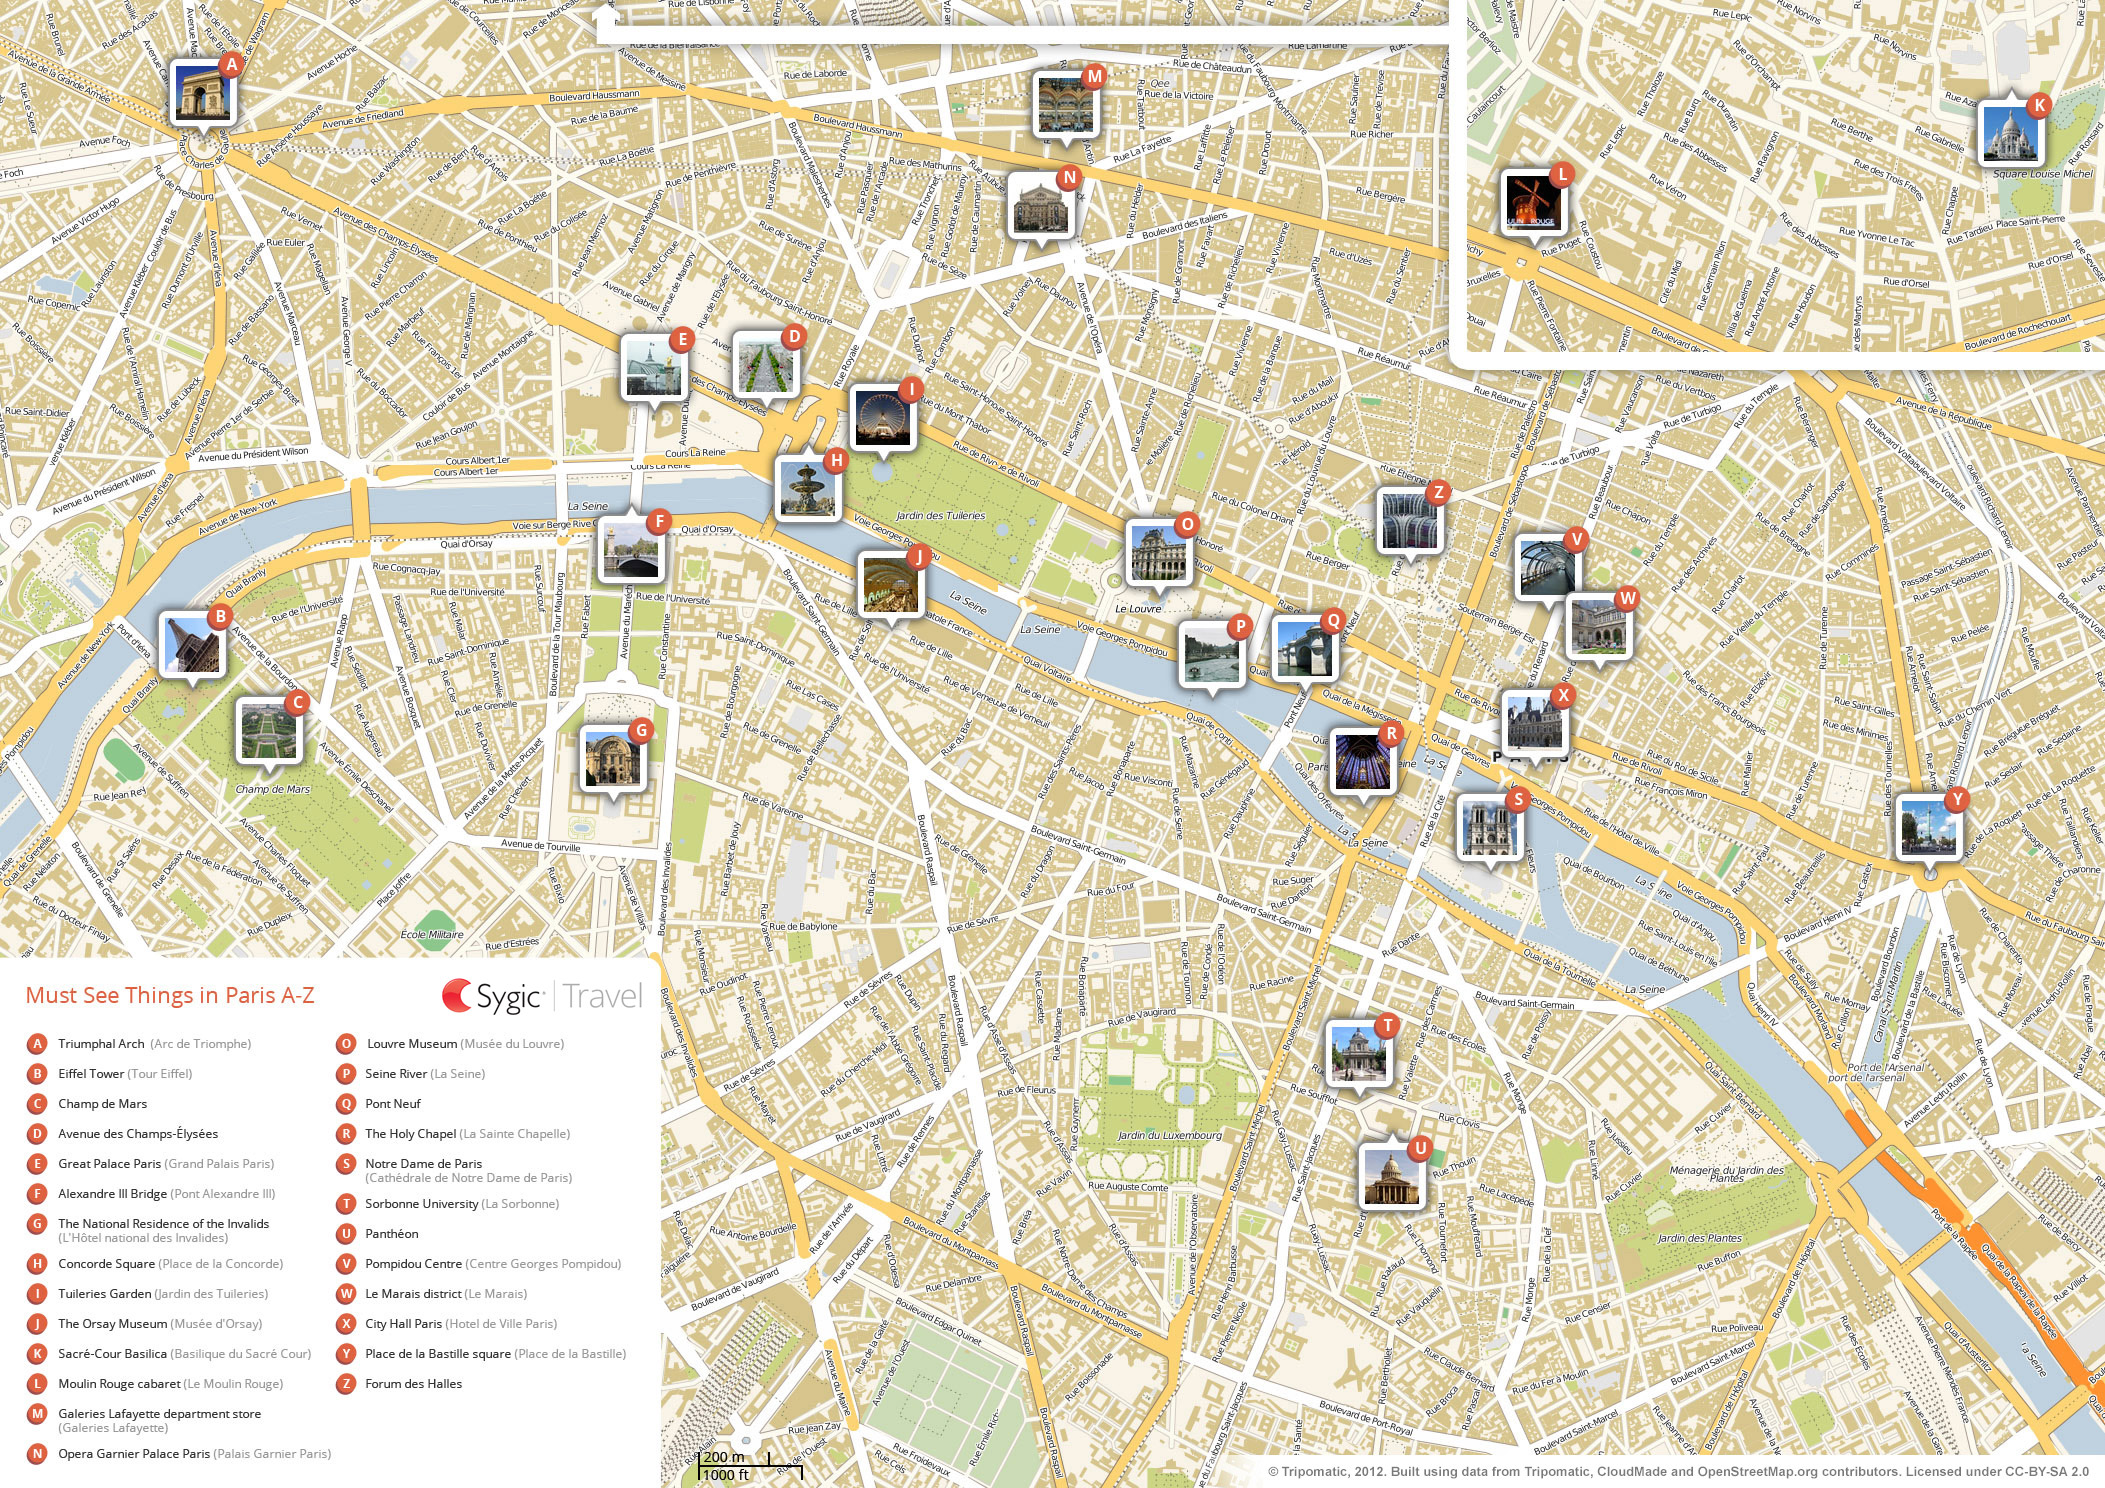 Paris Printable Tourist Map – Printable Tourist Map Of London Attractions